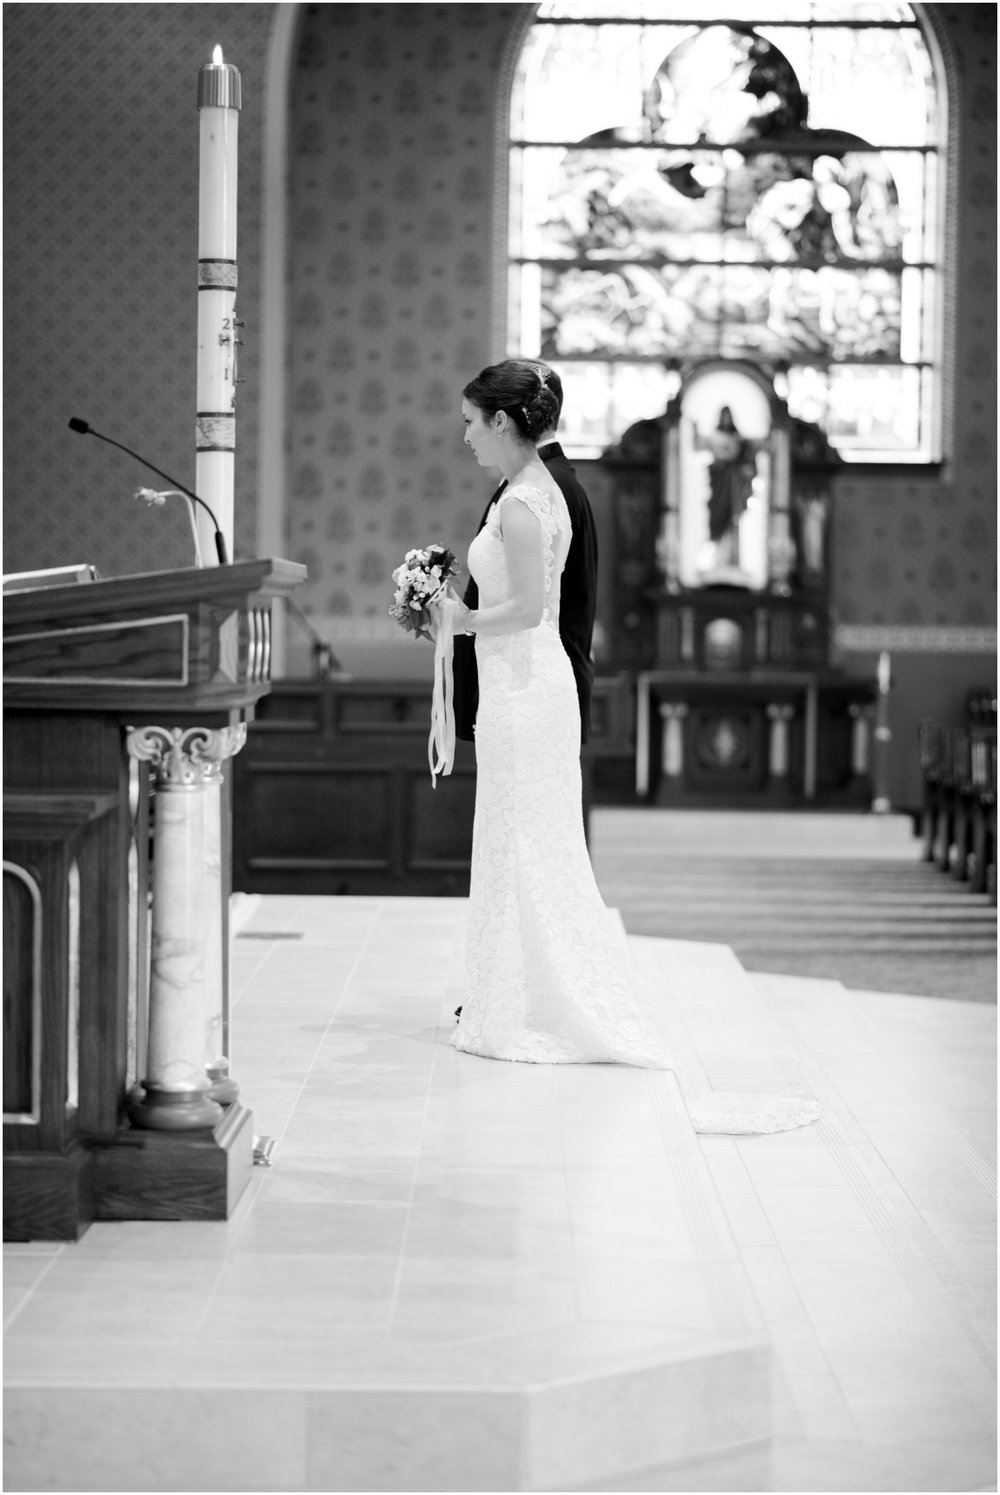 WISCONSIN DELLS WEDDING PHOTOGRAPHER | ST. CECILIA CATHOLIC CHURCH | WISCONSIN DELLS, WI | WEDDING_0230.jpg